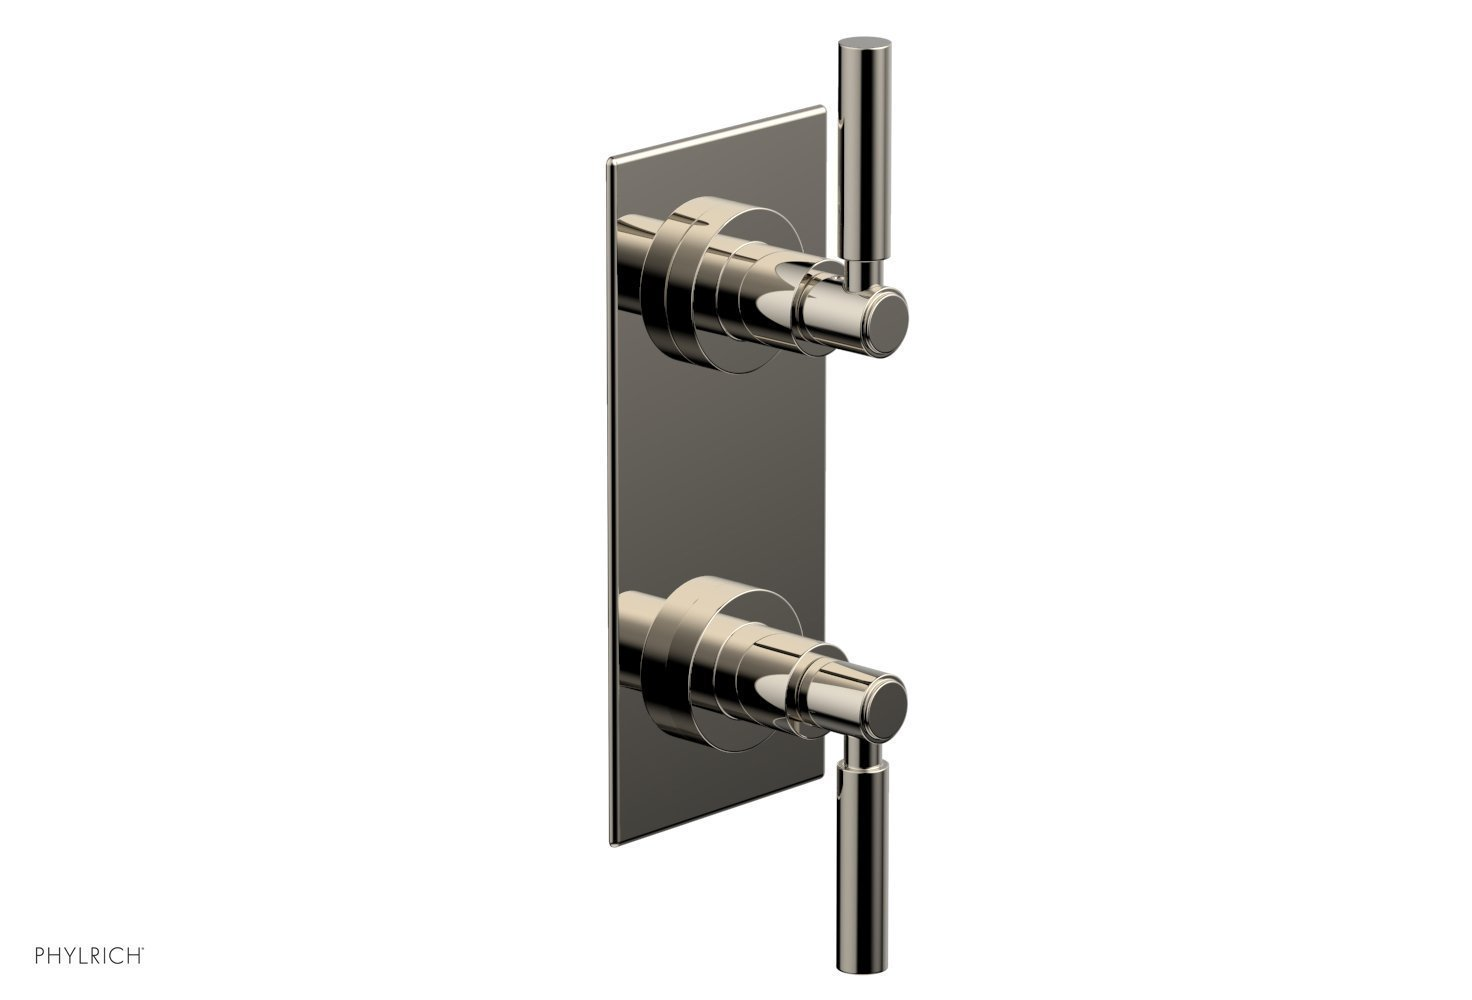 """BASIC 1/2"""" Thermostatic Valve with Volume Control or Diverter Lever Handles 4-344 - Polished Nickel"""